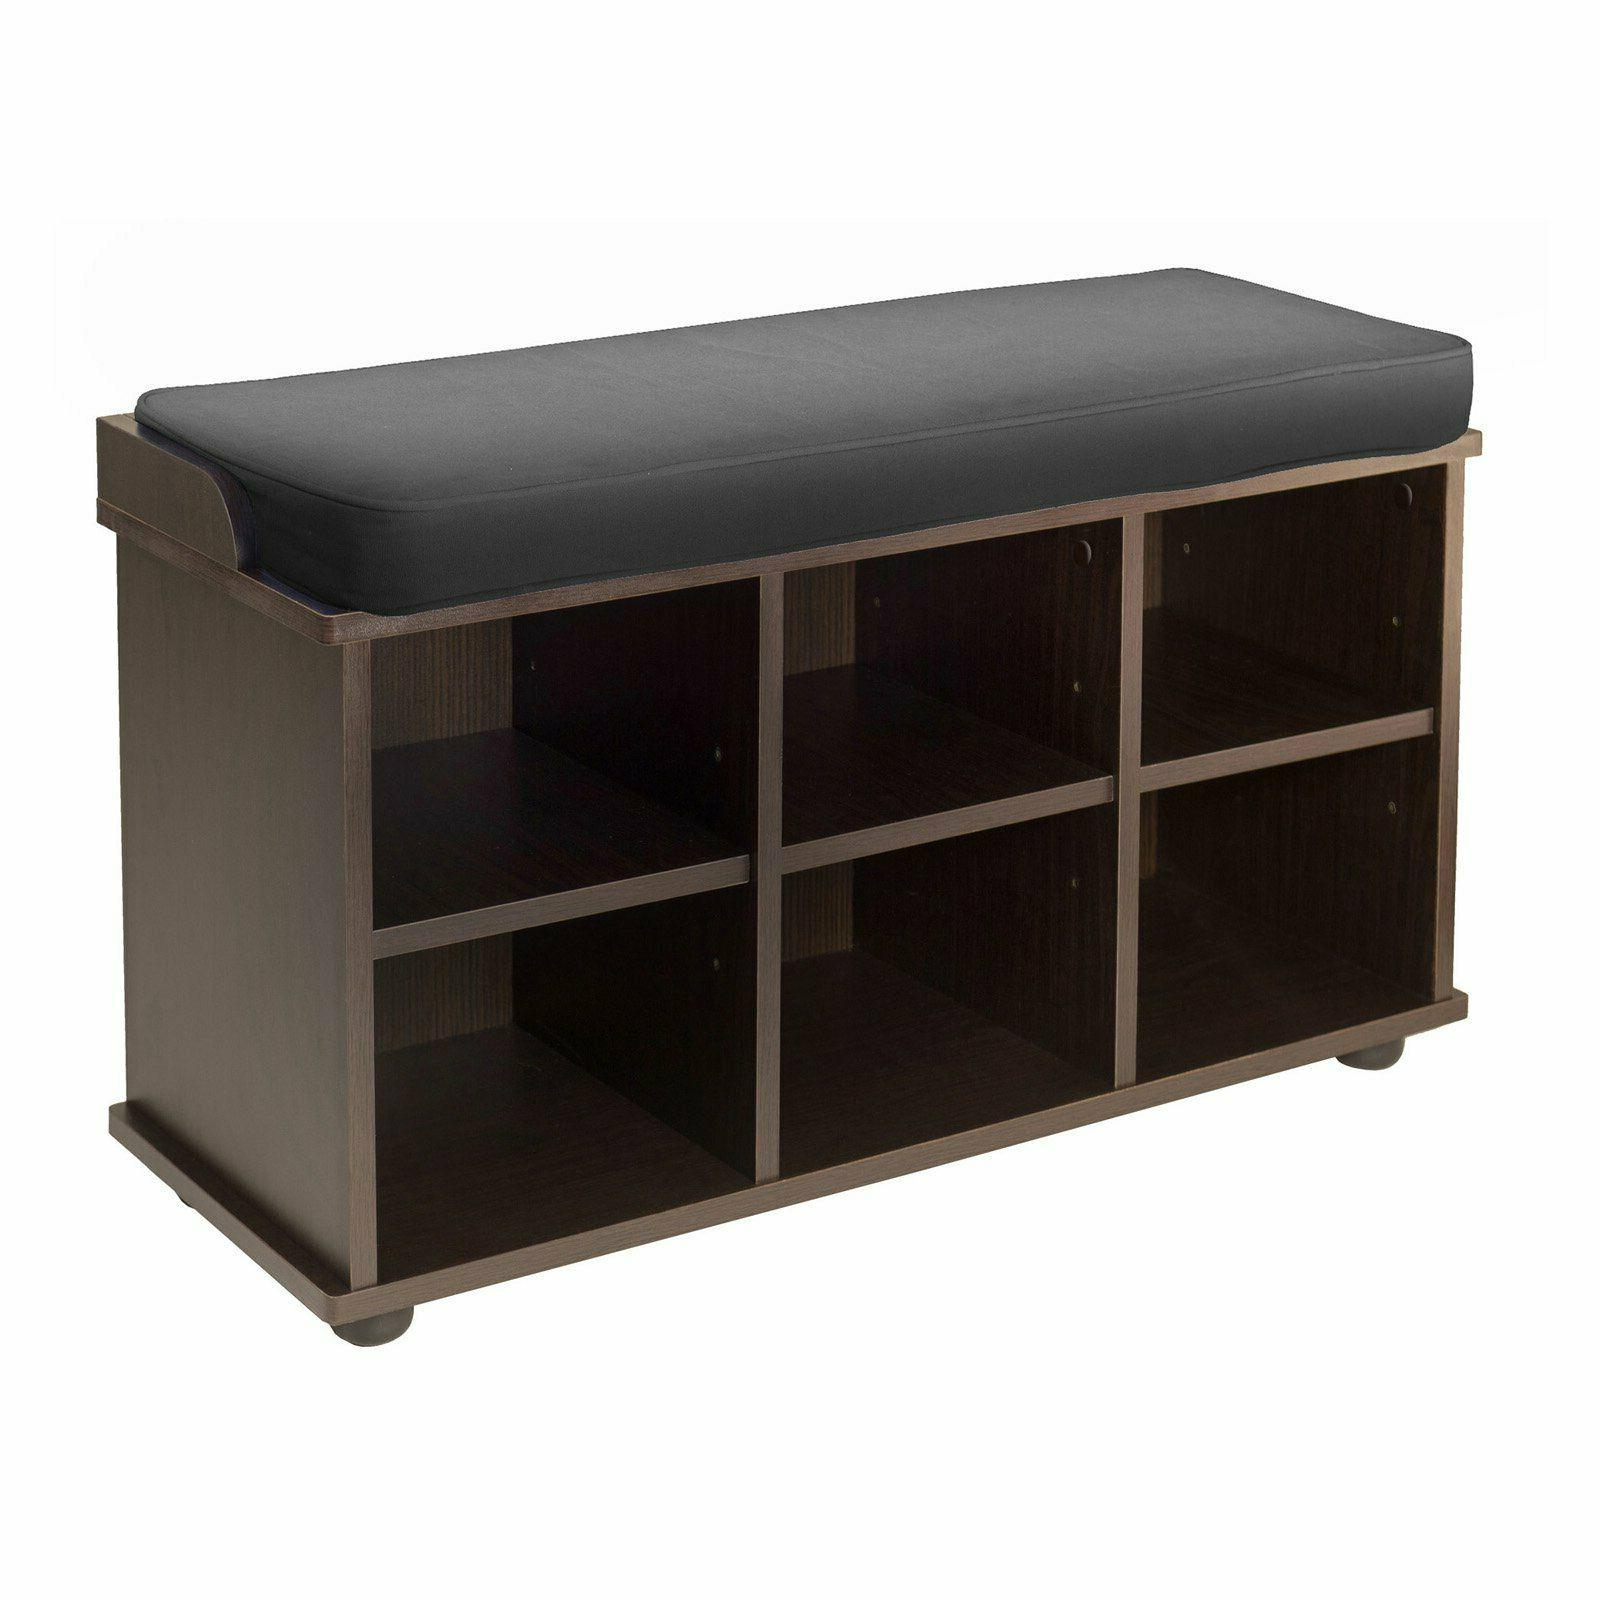 Townsend Storage Bench with Black Cushion Seat, Expresso Woo